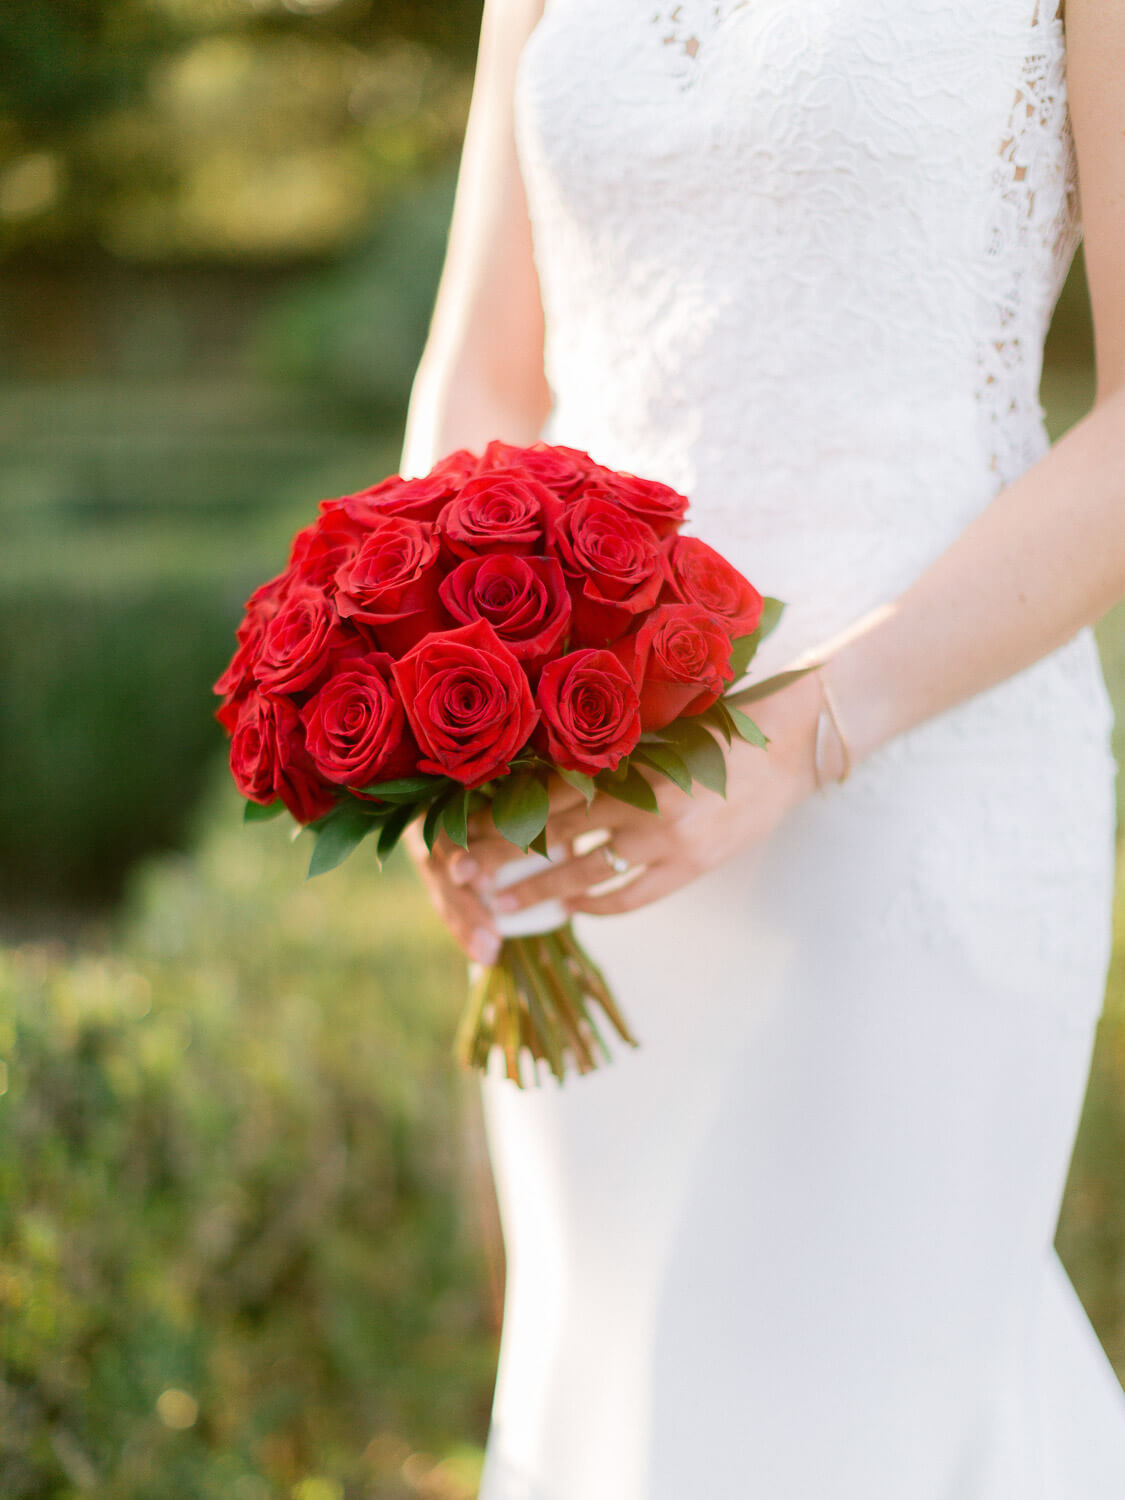 red roses bouquet by Portugal Wedding Photographer